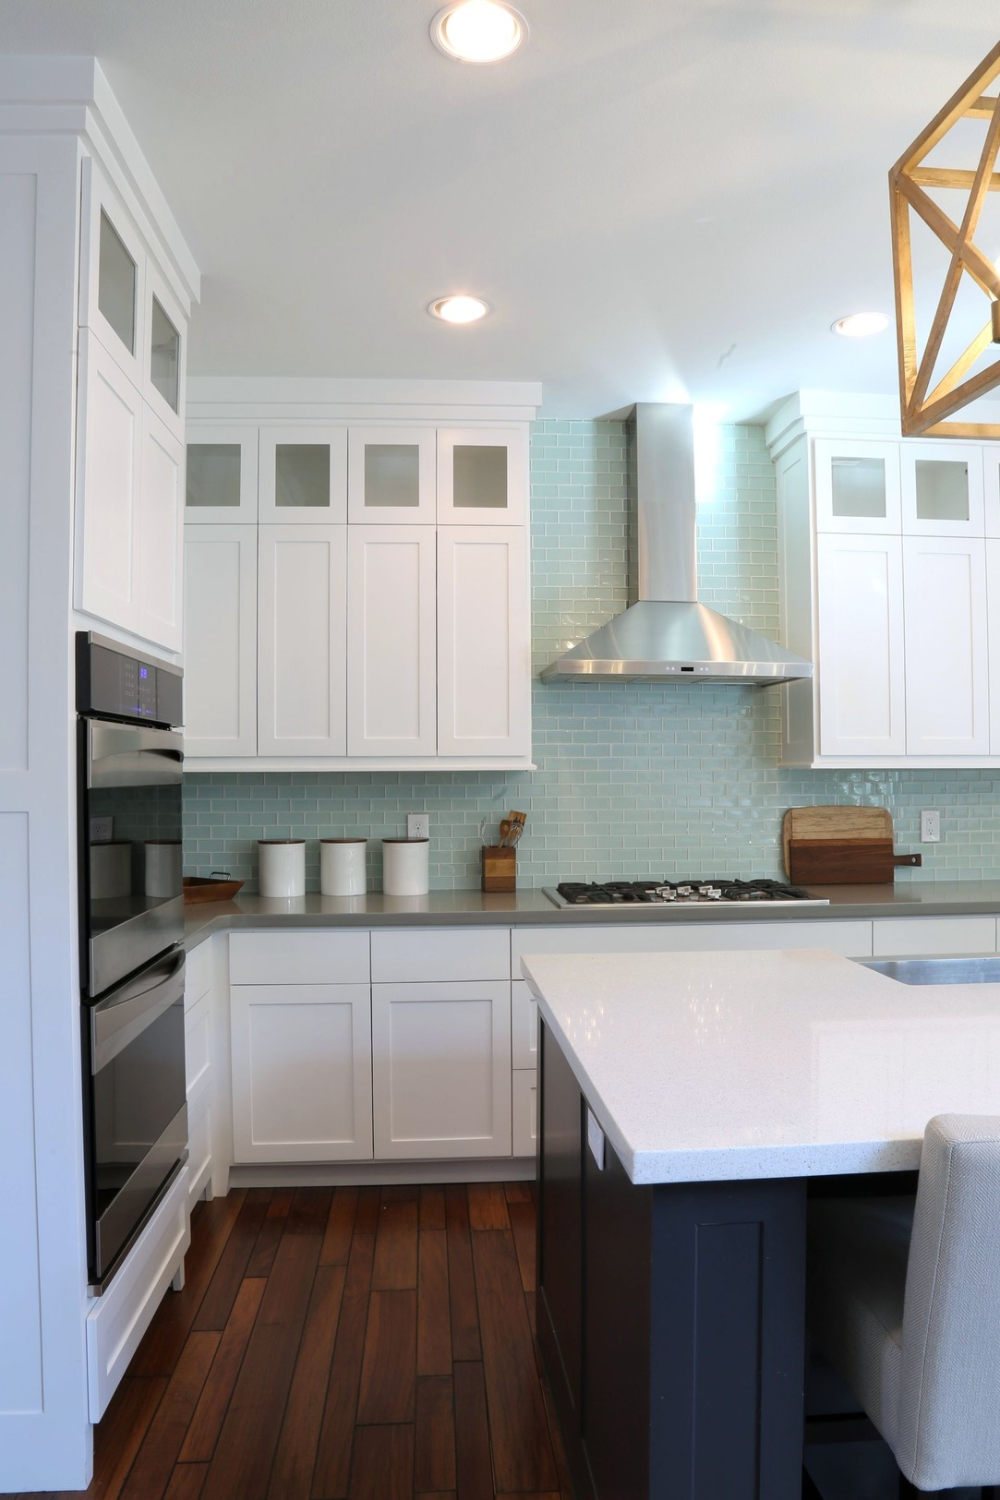 30 Beautiful Cabinet Paint Colors for Kitchens and Baths ...